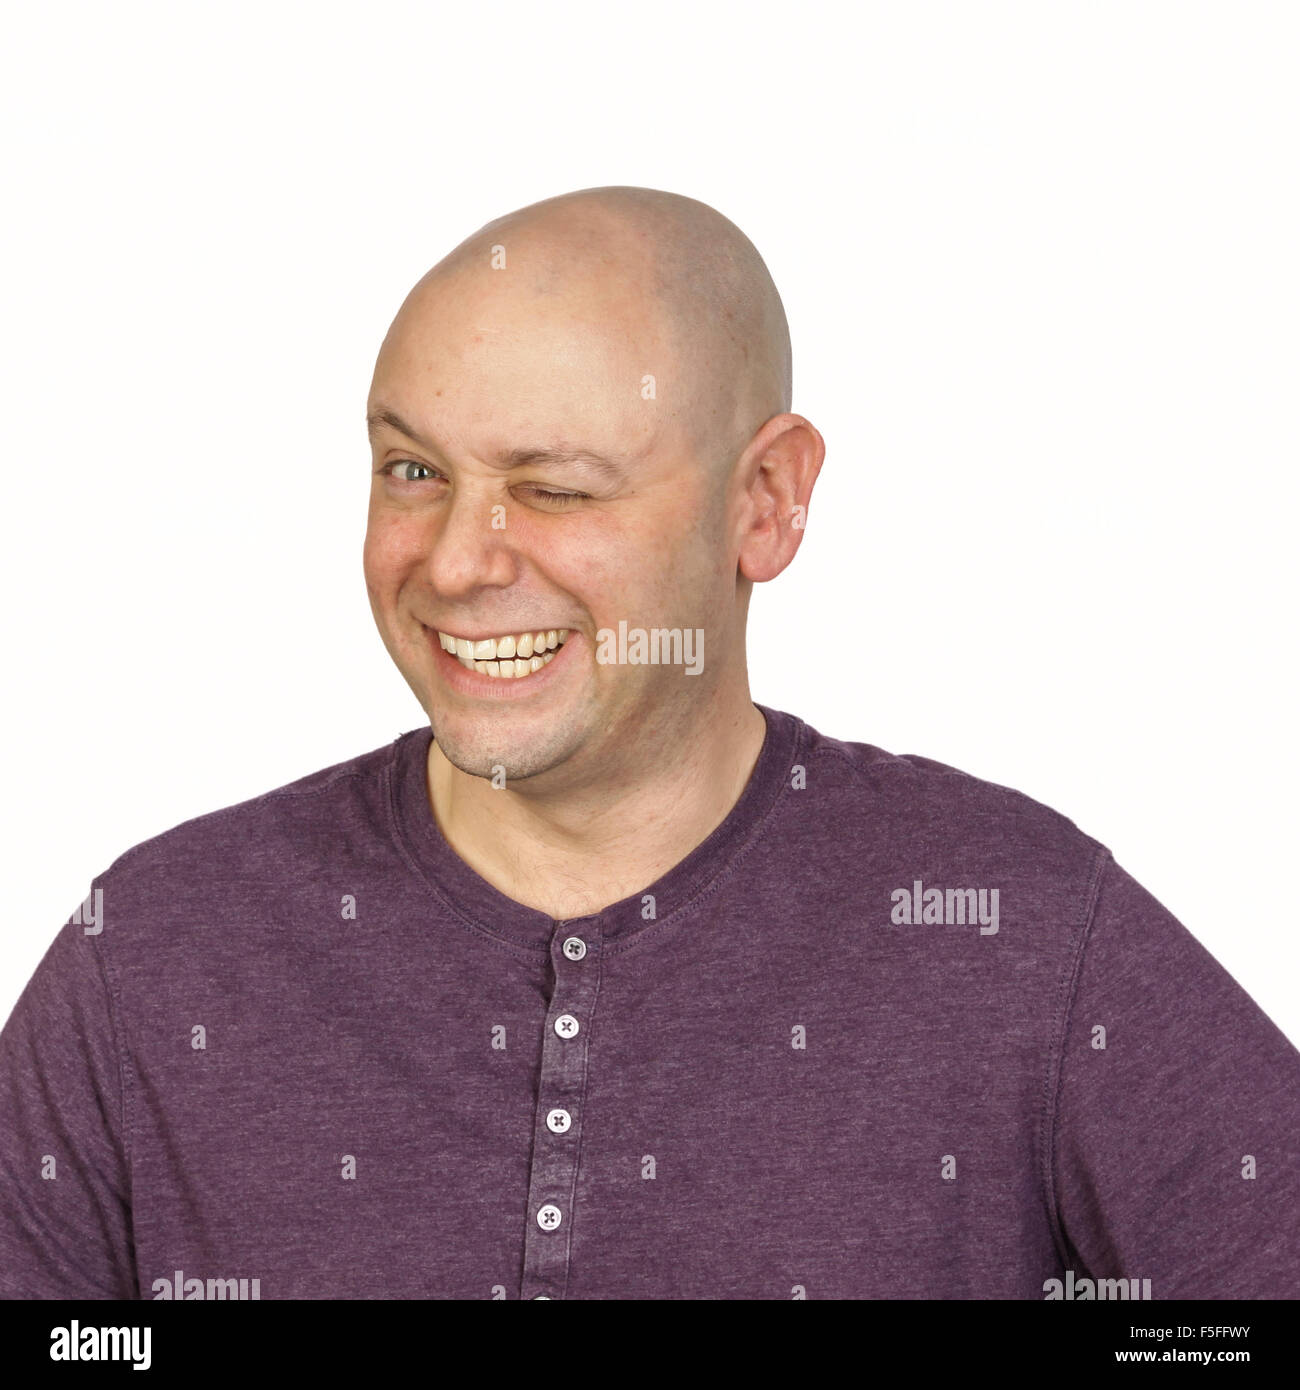 Big wink by a bald man in studio on white background. He is wearing a purple buttoned t-shirt with a round neck. - Stock Image